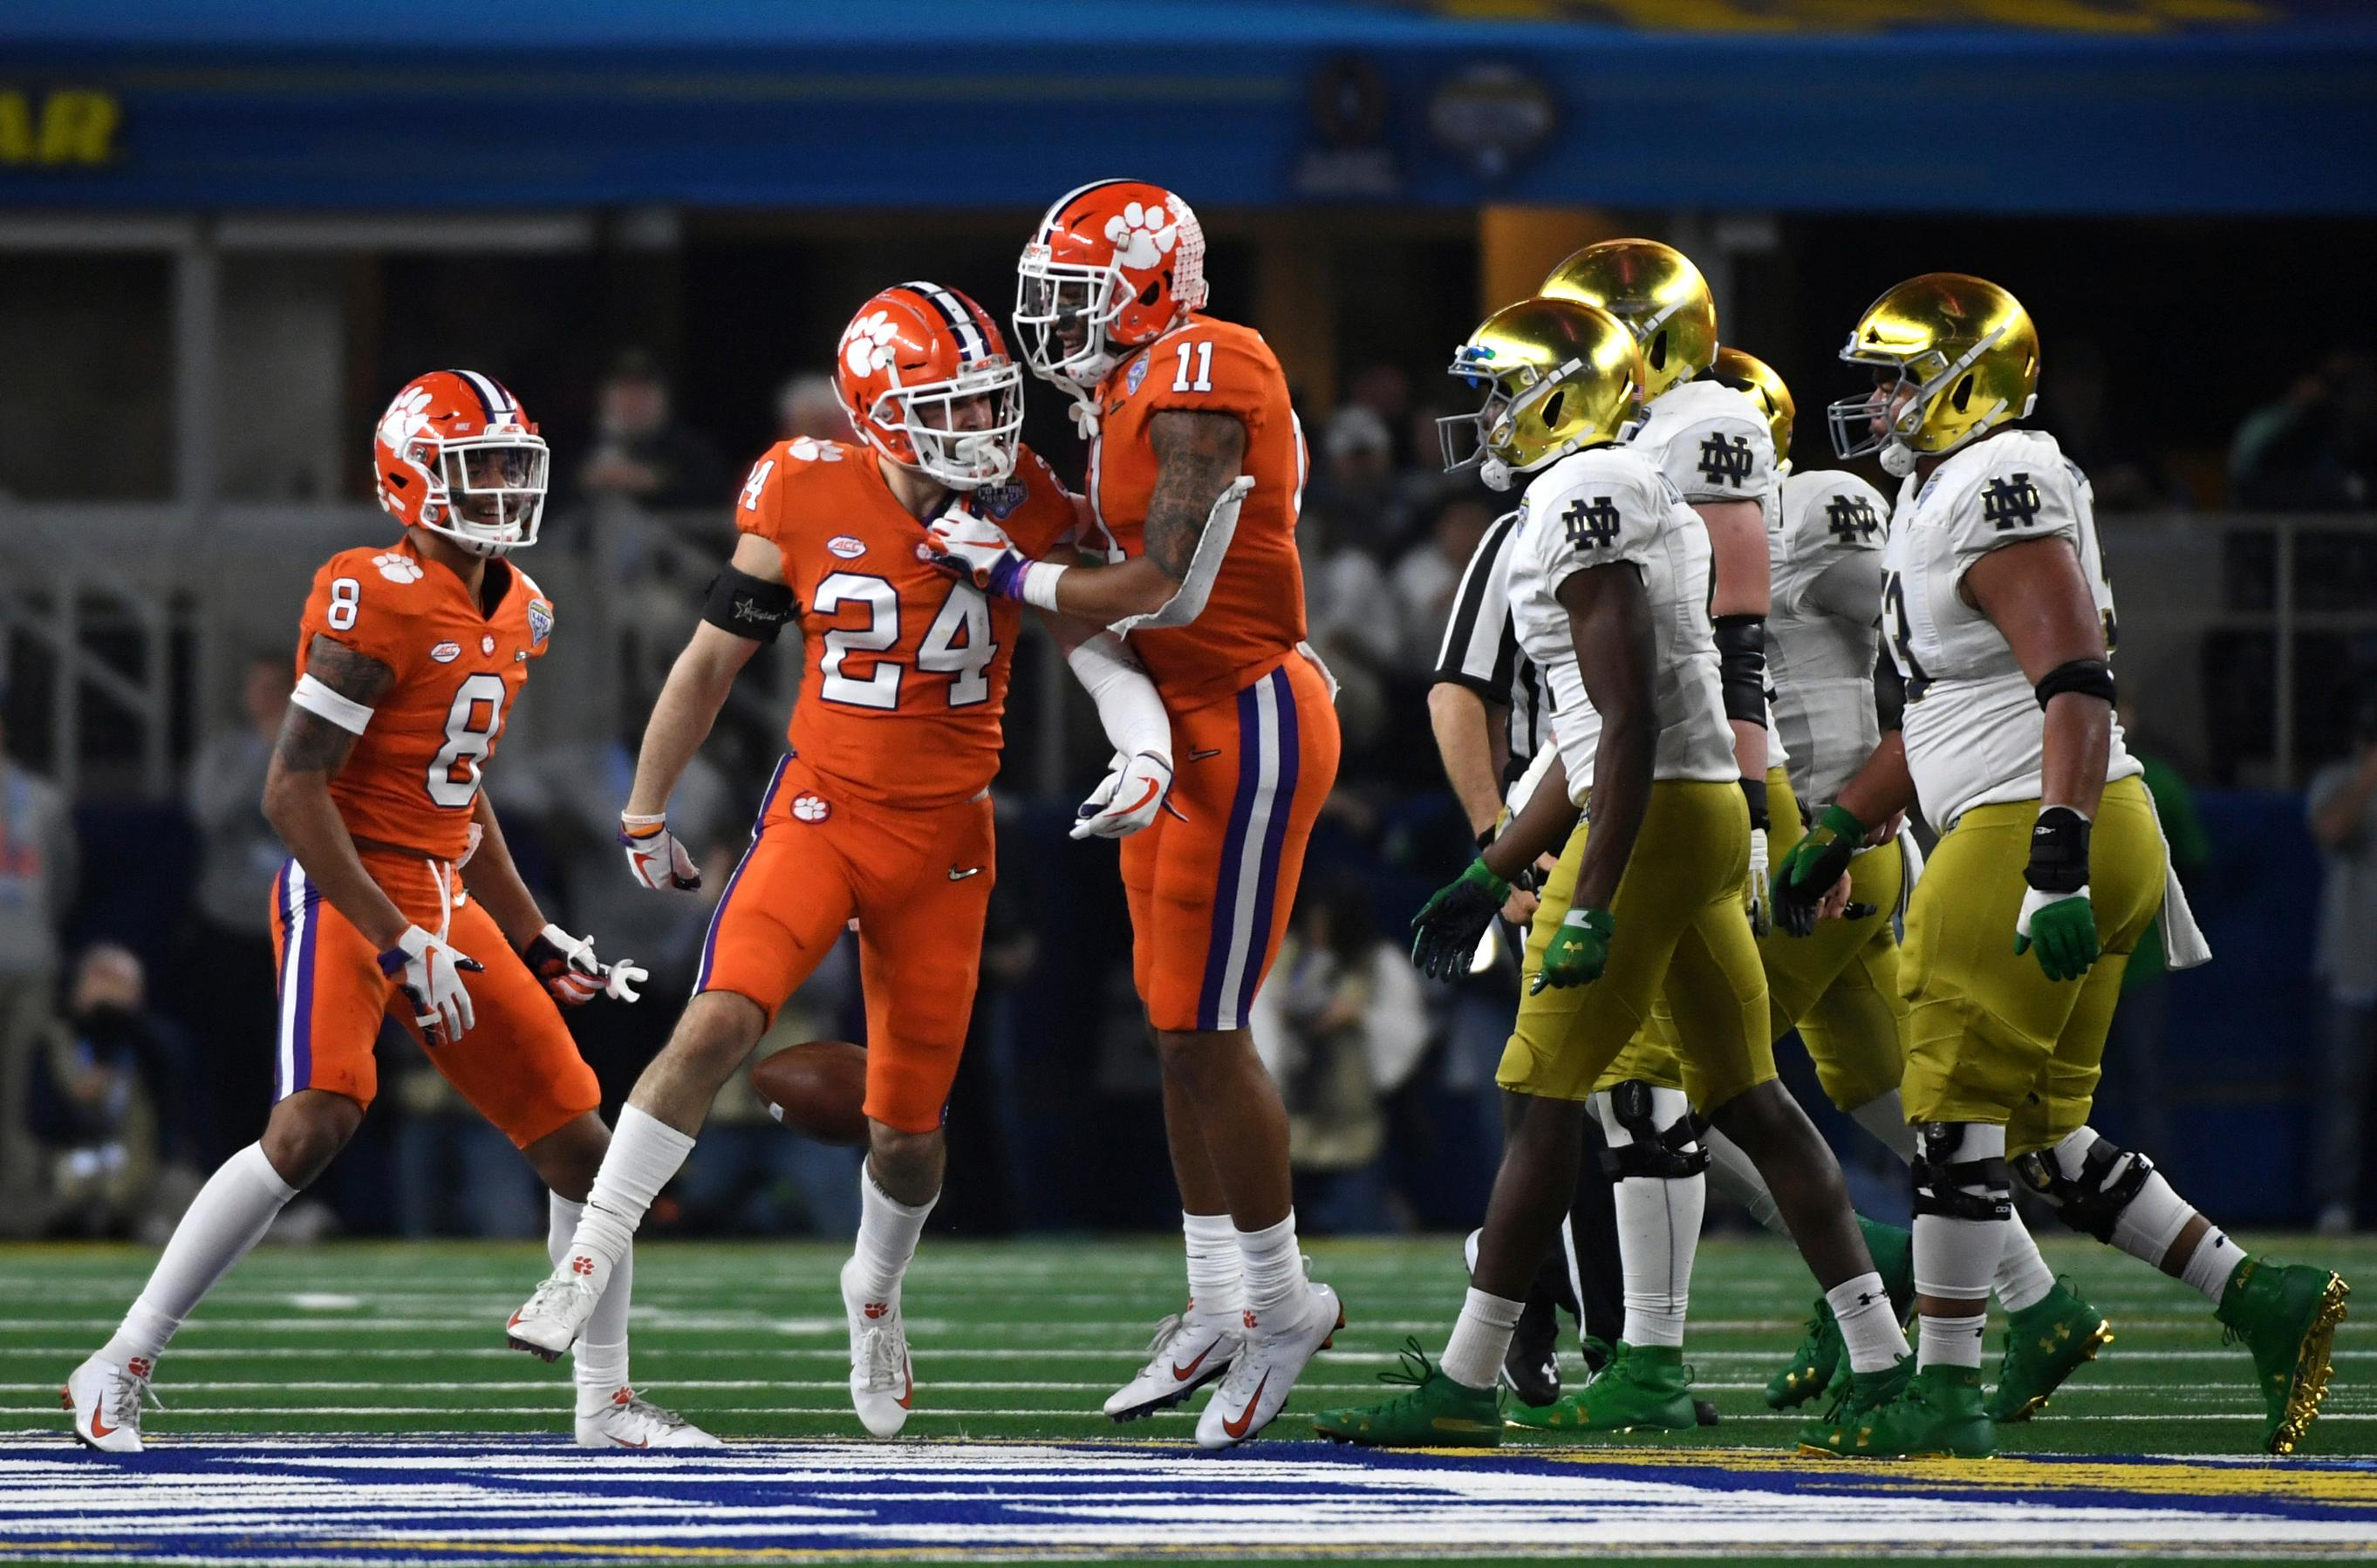 Clemson cornerback A.J. Terrell (8), safety Nolan Turner (24) and safety Isaiah Simmons (11) celebrate a interception thrown by Notre Dame quarterback Ian Book (12) in the second half of the NCAA Cotton Bowl semi-final playoff football game, Saturday, Dec. 29, 2018, in Arlington, Texas. (AP Photo/Jeffrey McWhorter)